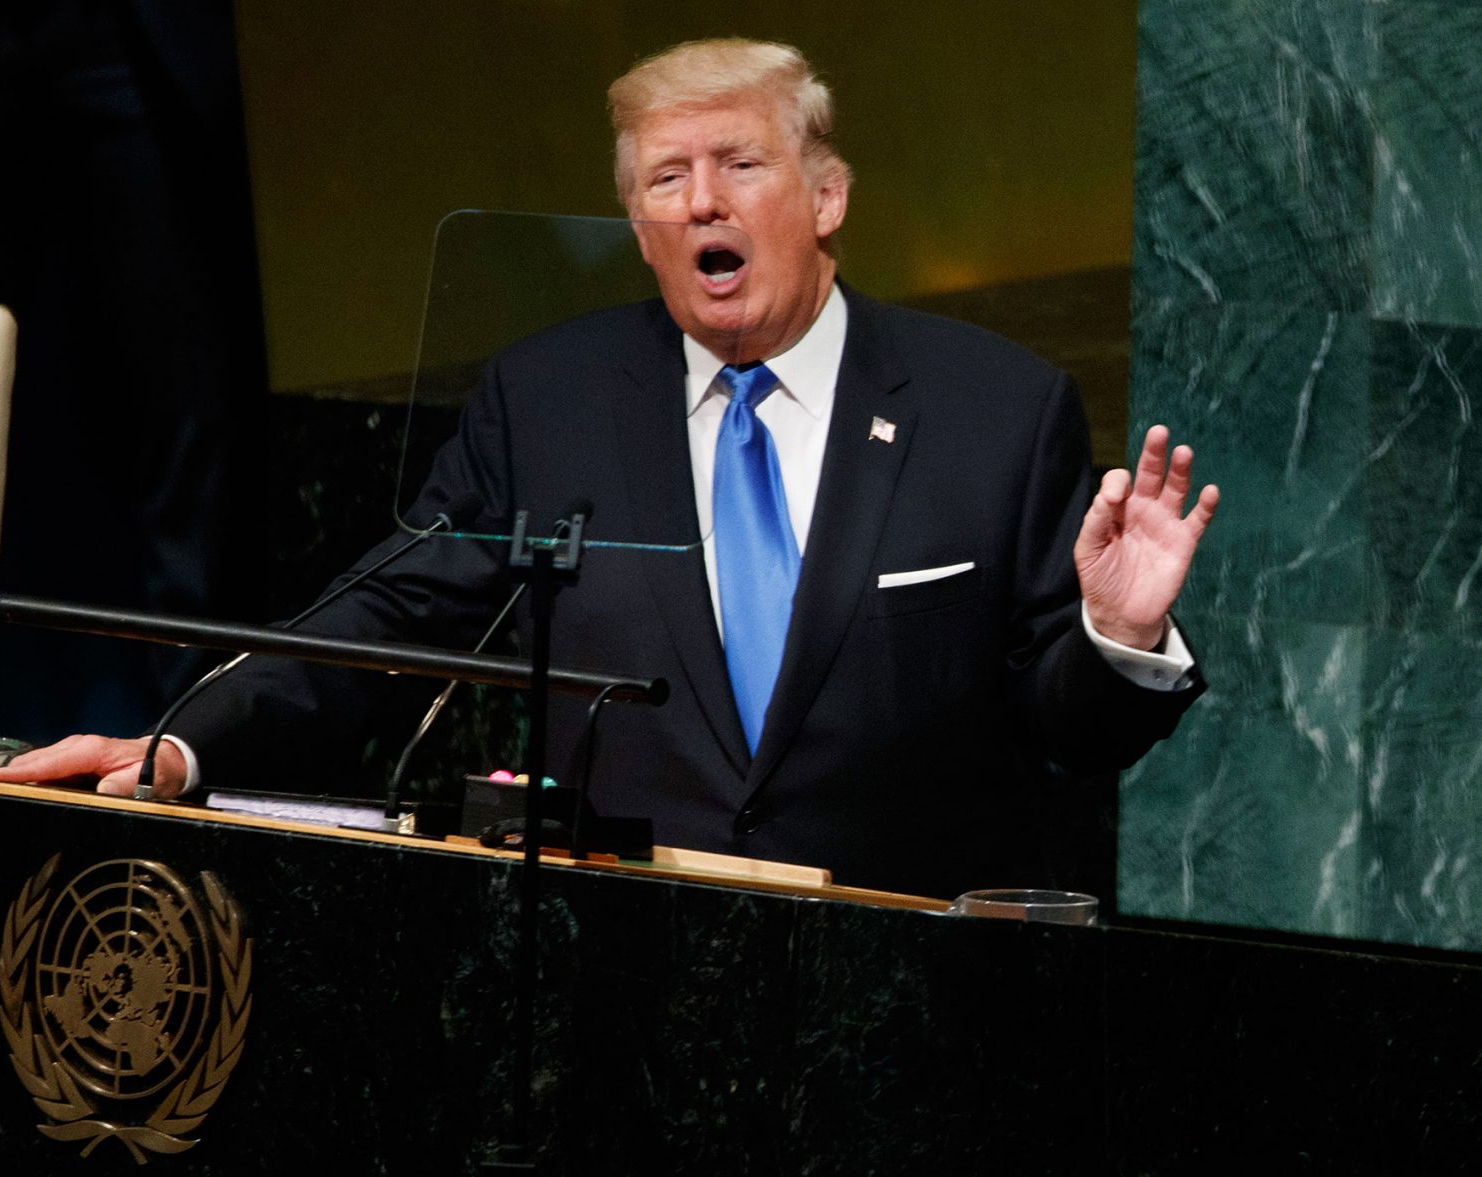 Trump Nails it at the UN: Socialism Sucks